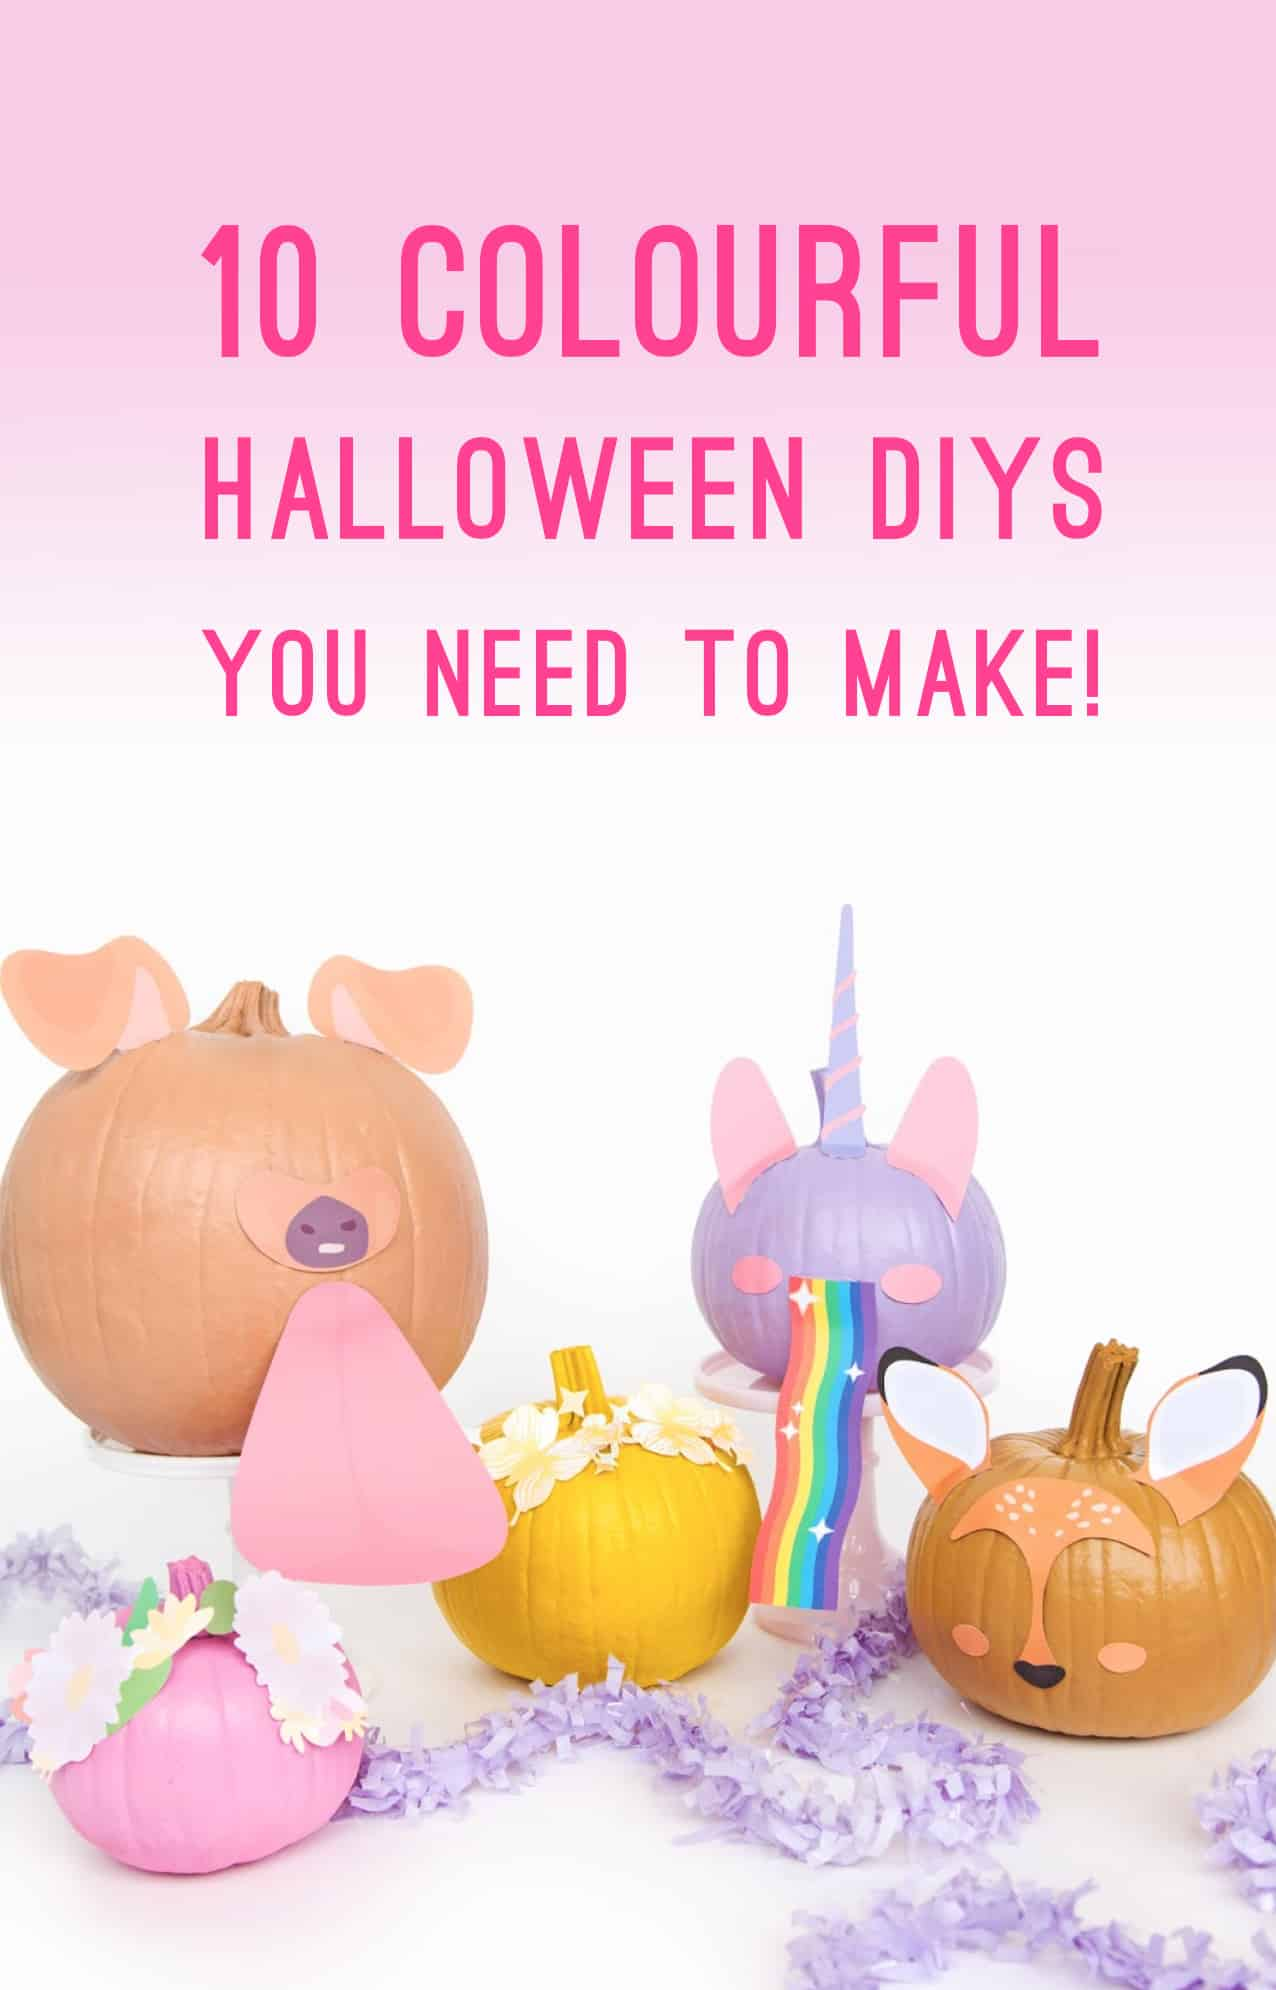 colourful-halloween-decorations-ideas-bright-fun